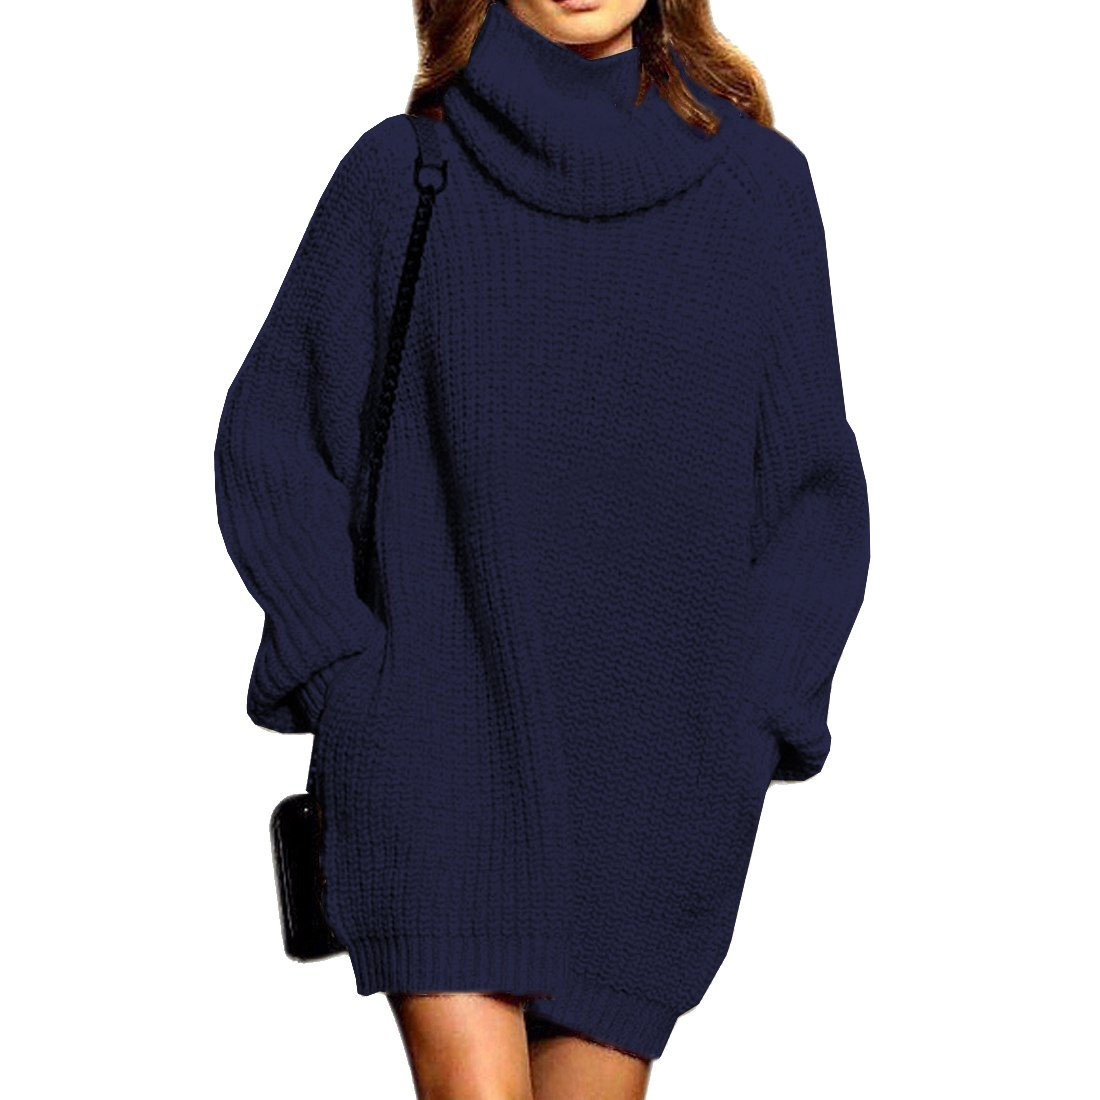 Sweater Dress for Women Cowl Neck Cashmere with Pocket Thick Oversized Pullover Tops,Navy M